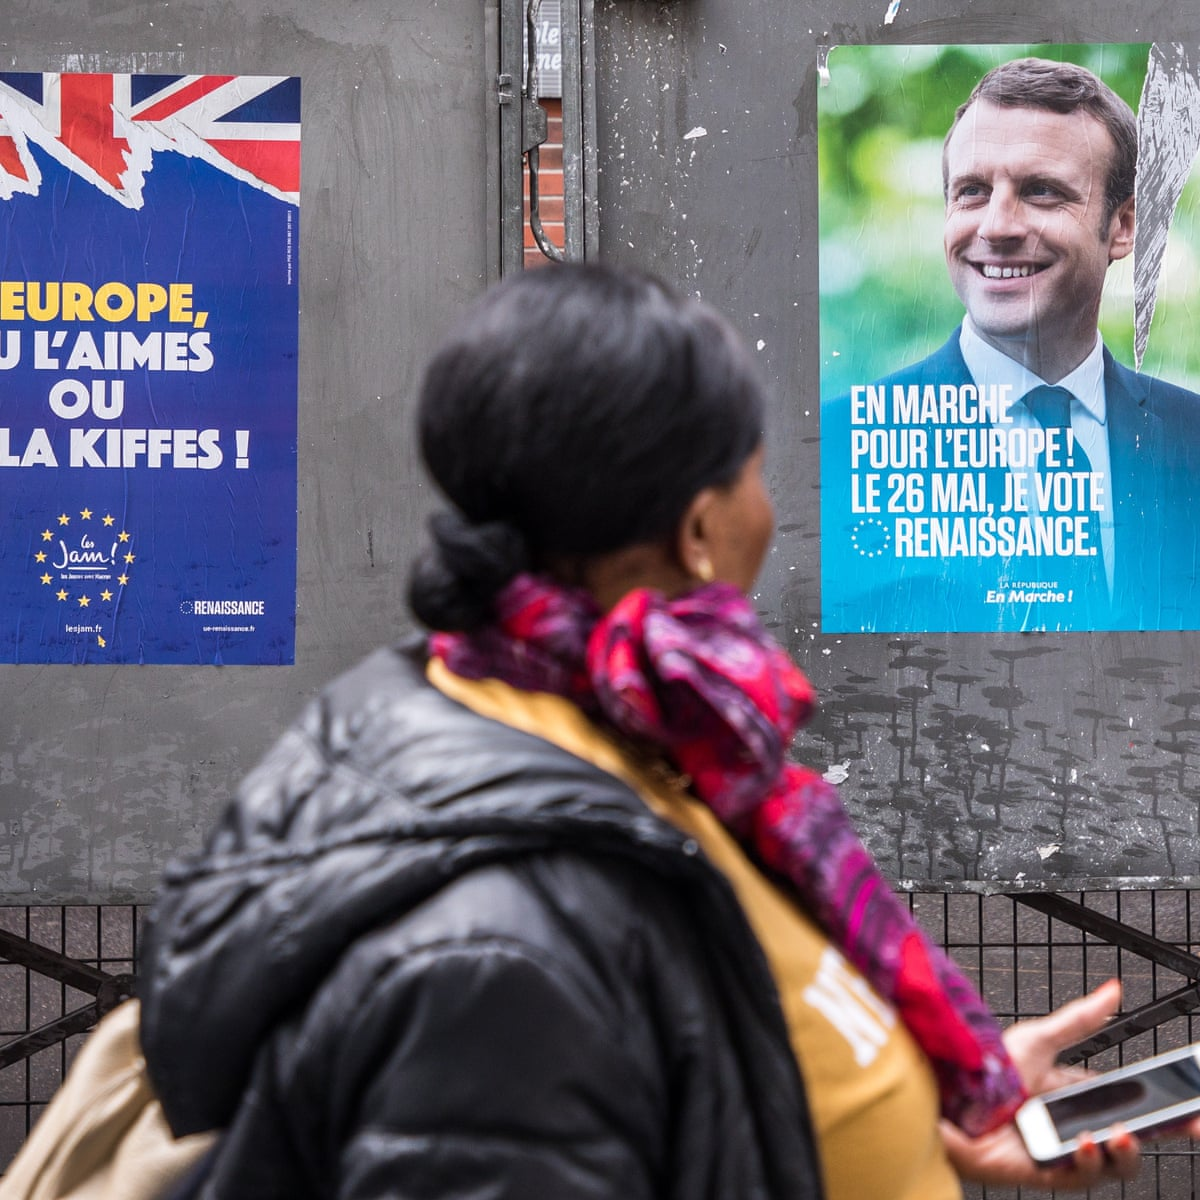 Macron S Vision For Europe Faces Test In French Eu Elections European Parliamentary Elections 2019 The Guardian